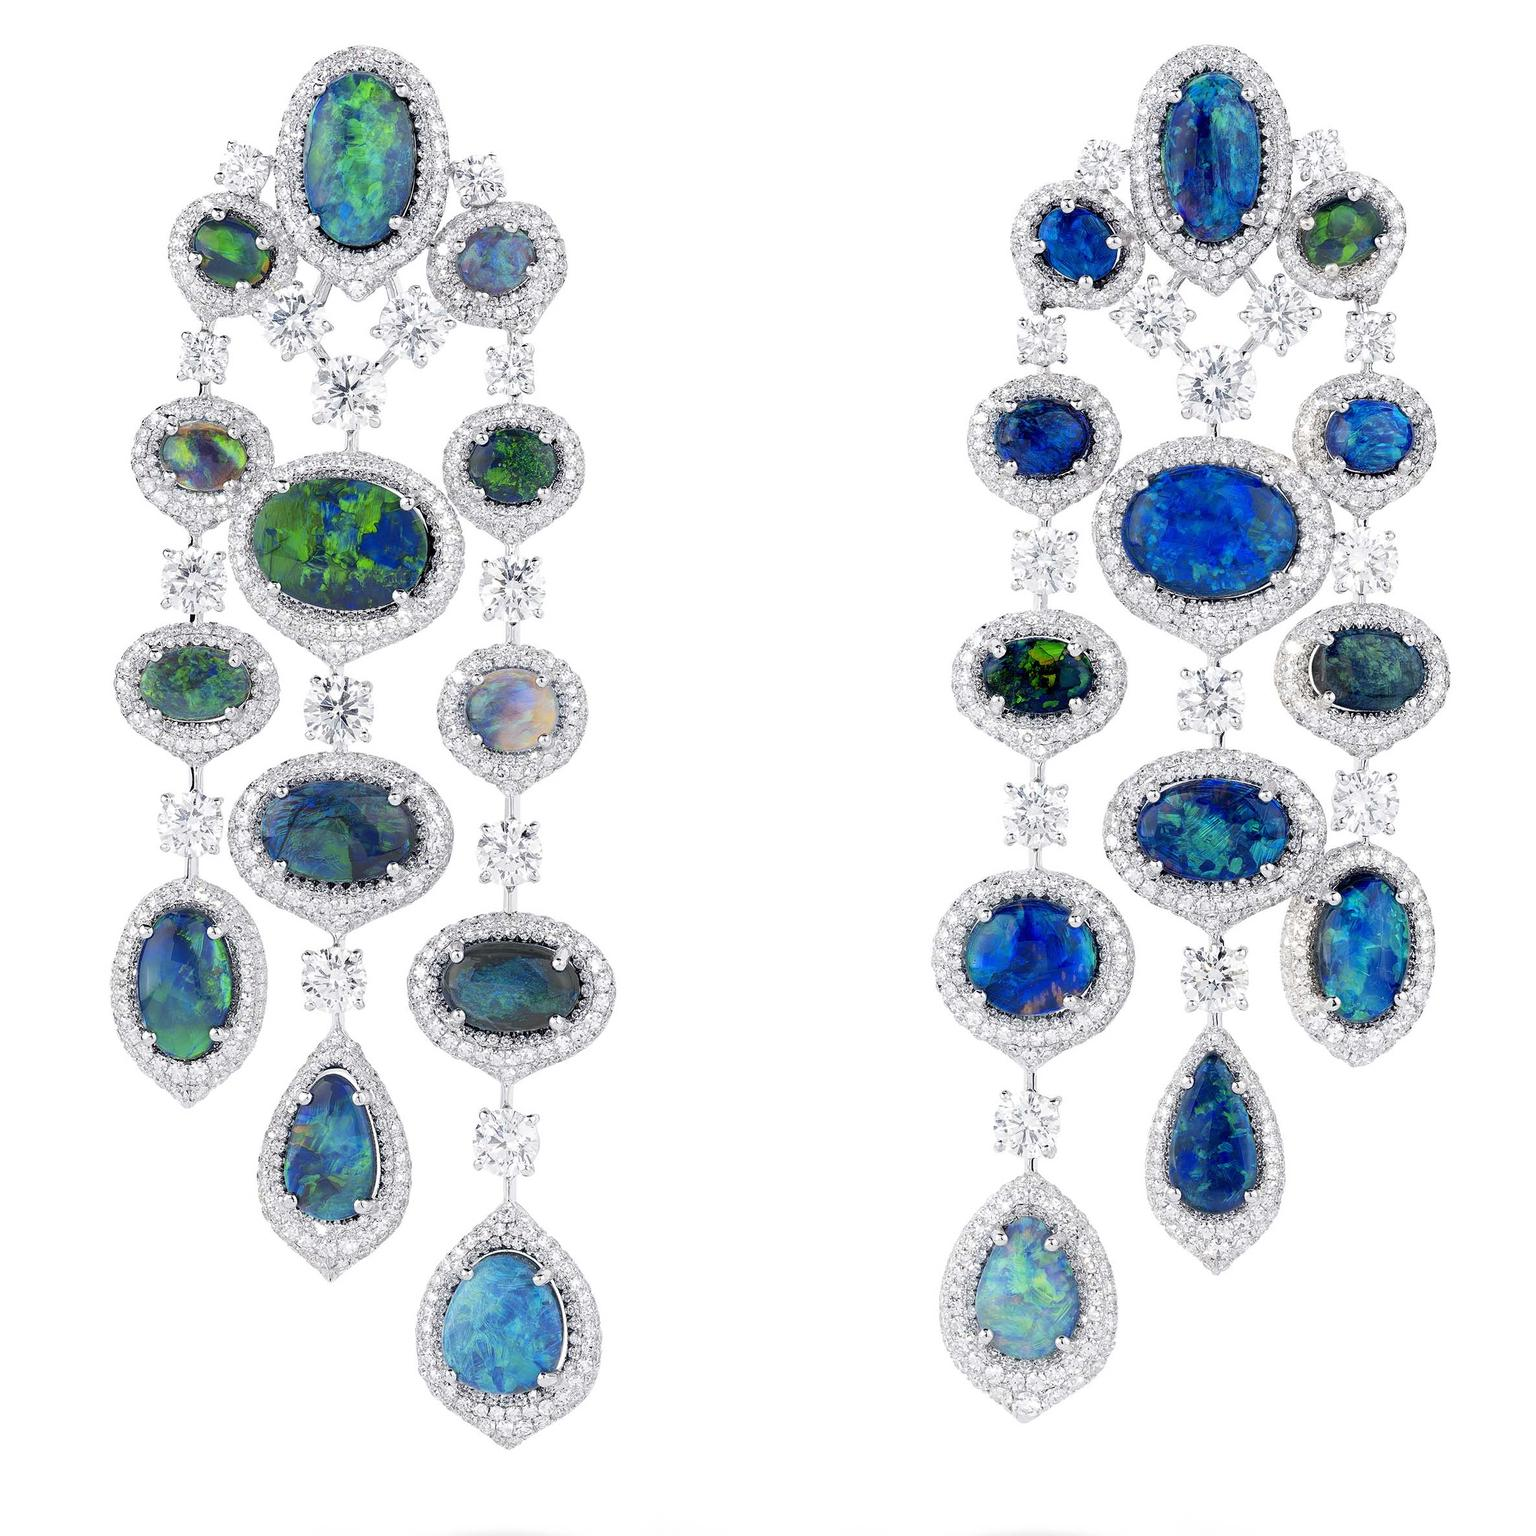 Chandelier earrings from David Morris